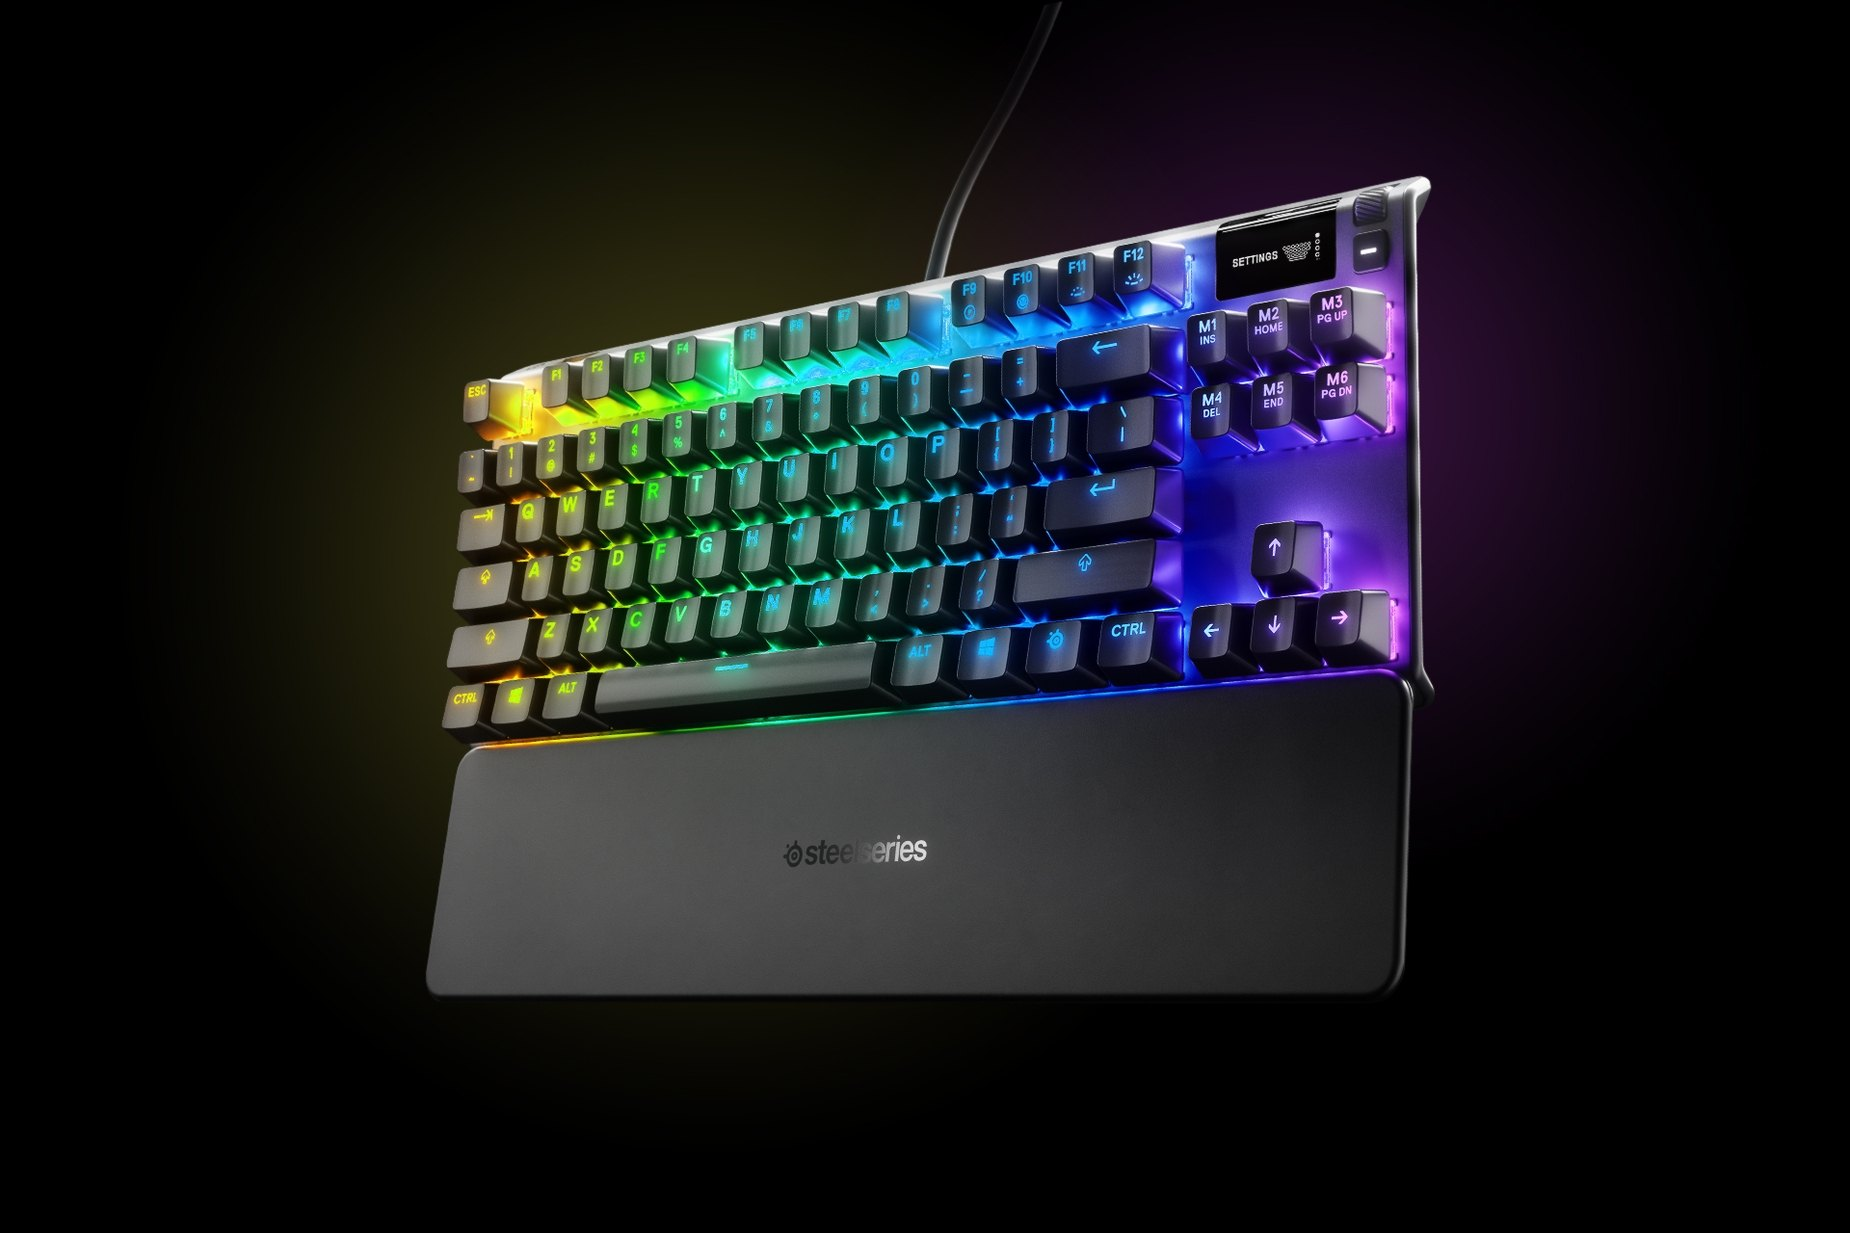 Fransızca - Apex 7 TKL (Brown Switch) gaming keyboard with the illumination lit up on dark background, also shows the OLED screen and controls used to change settings and adjust audio